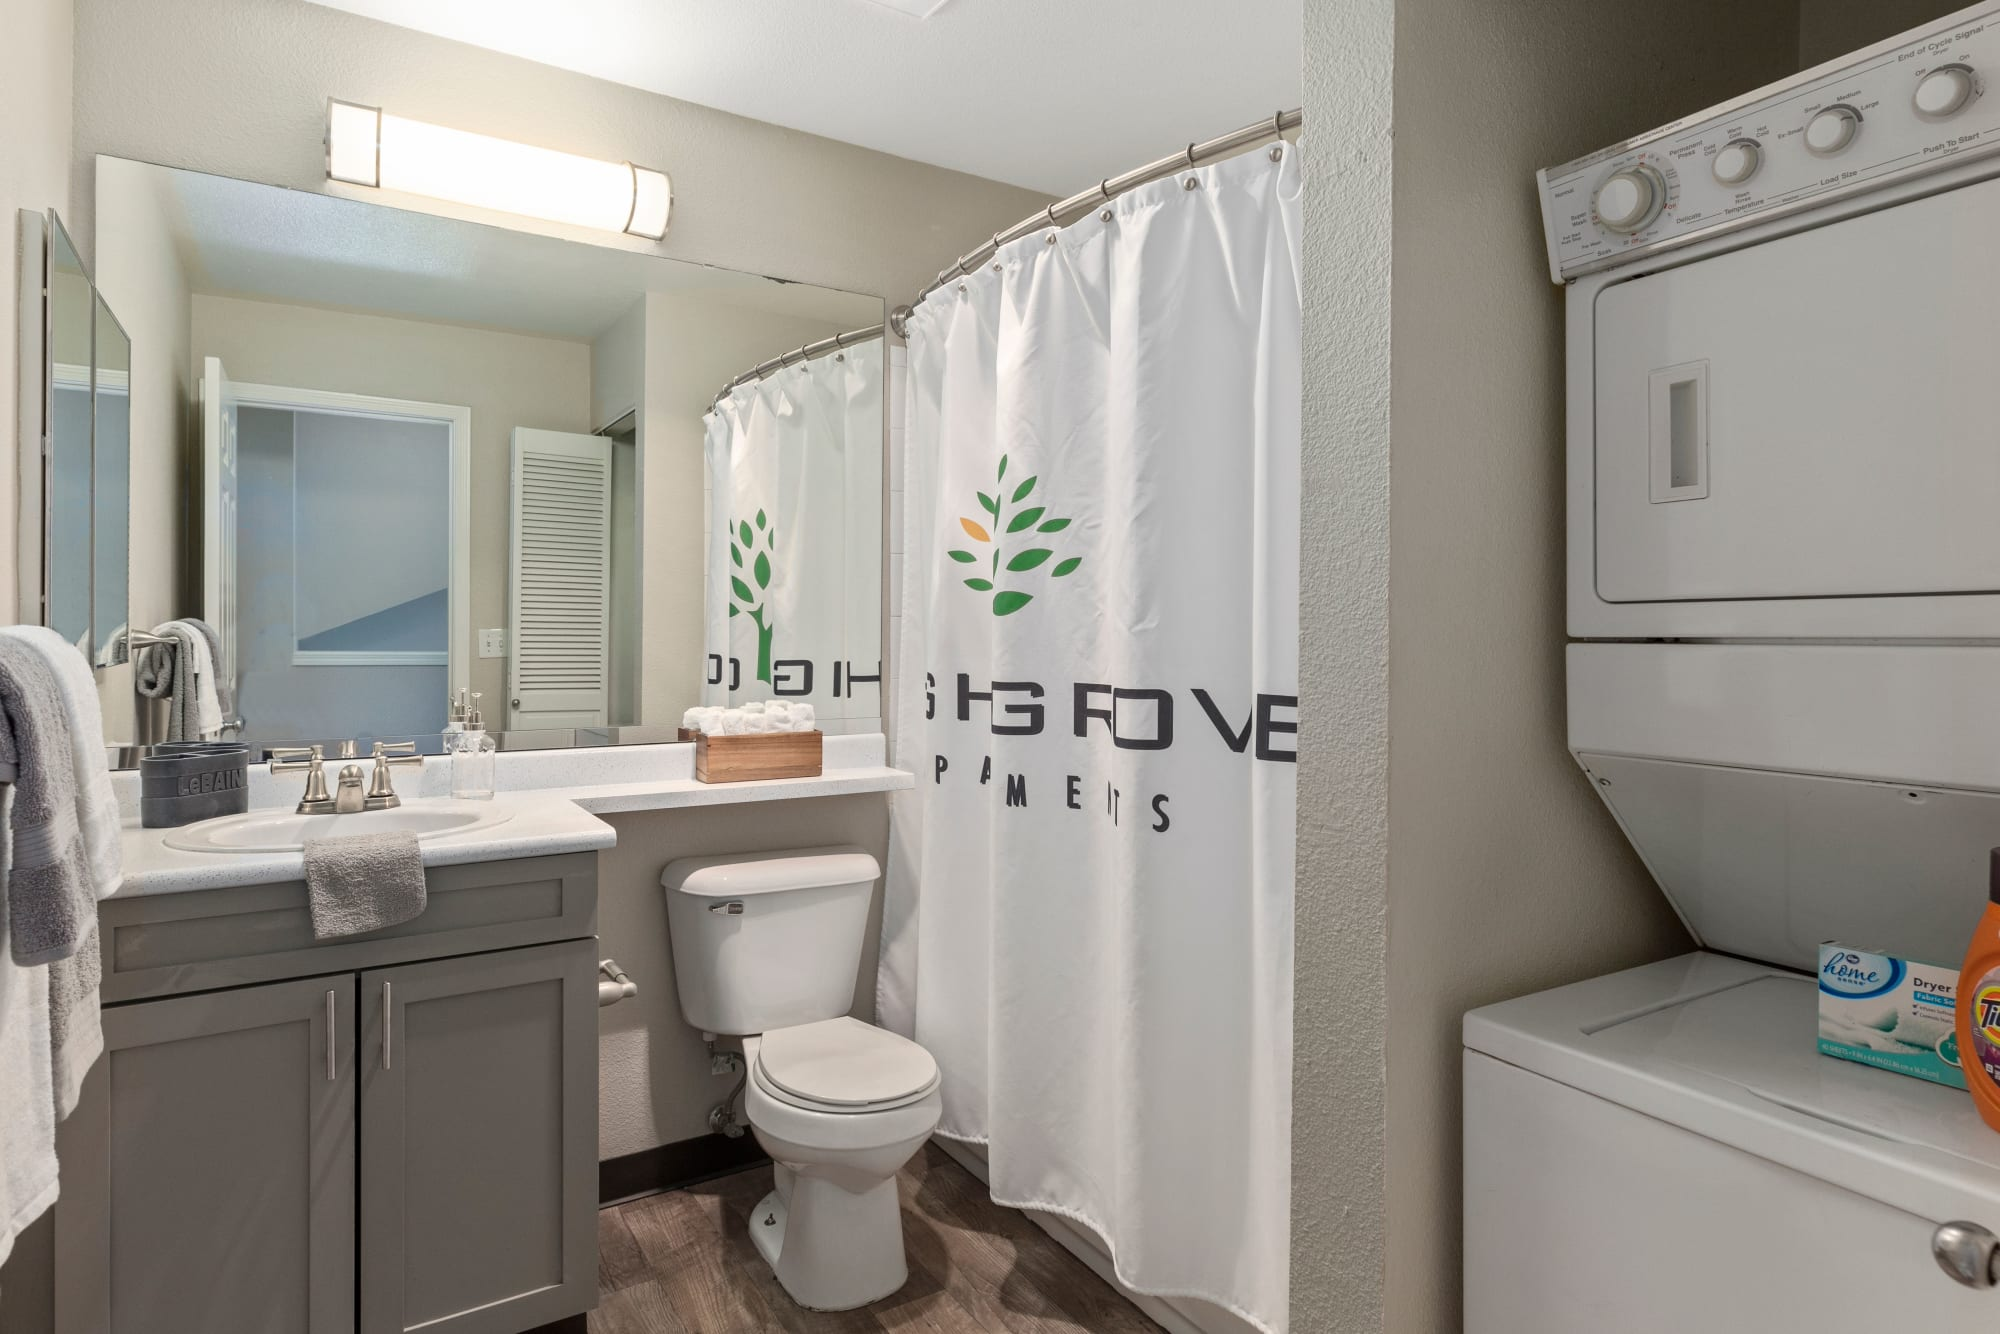 A model bathroom with grey cabinetry at HighGrove Apartments in Everett, Washington